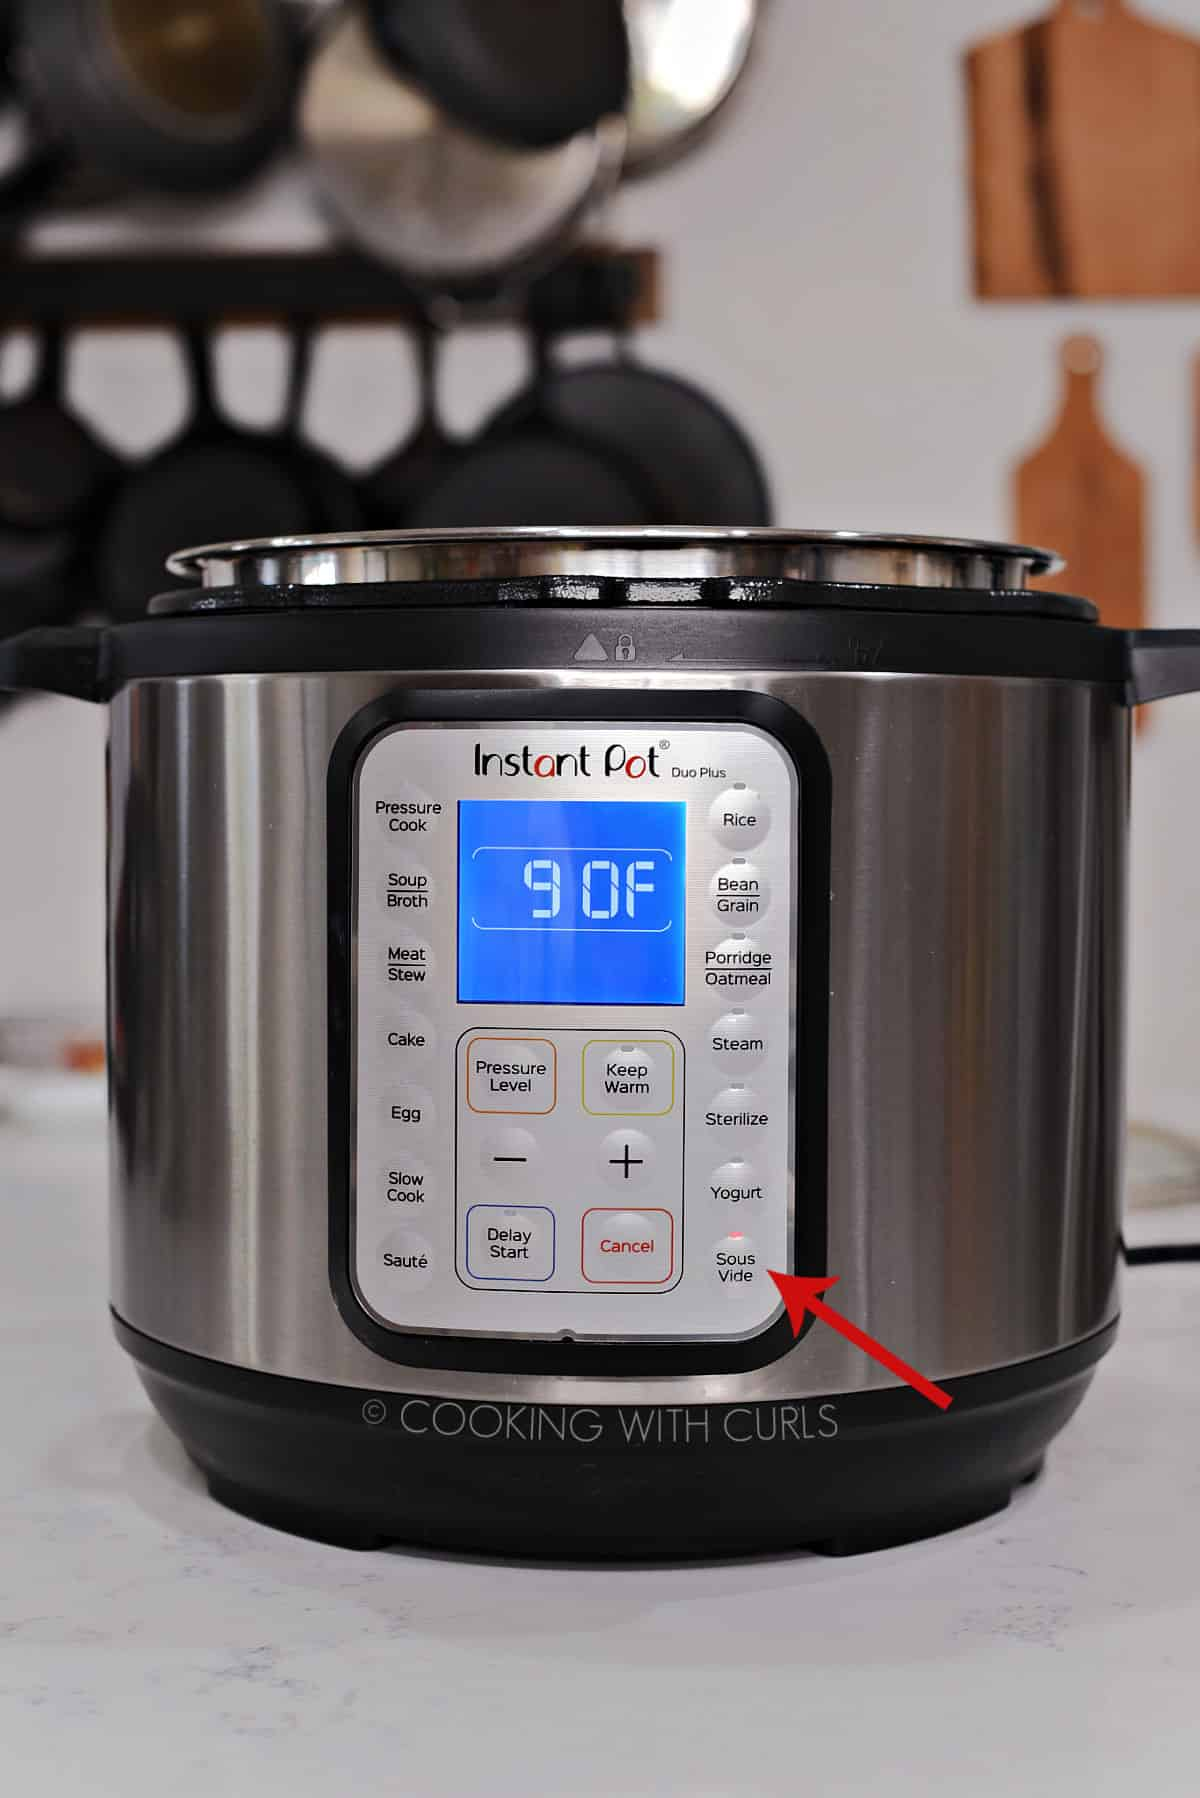 Instant Pot set to 90 degrees on the Sous Vide setting with a red arrow pointing to the button.